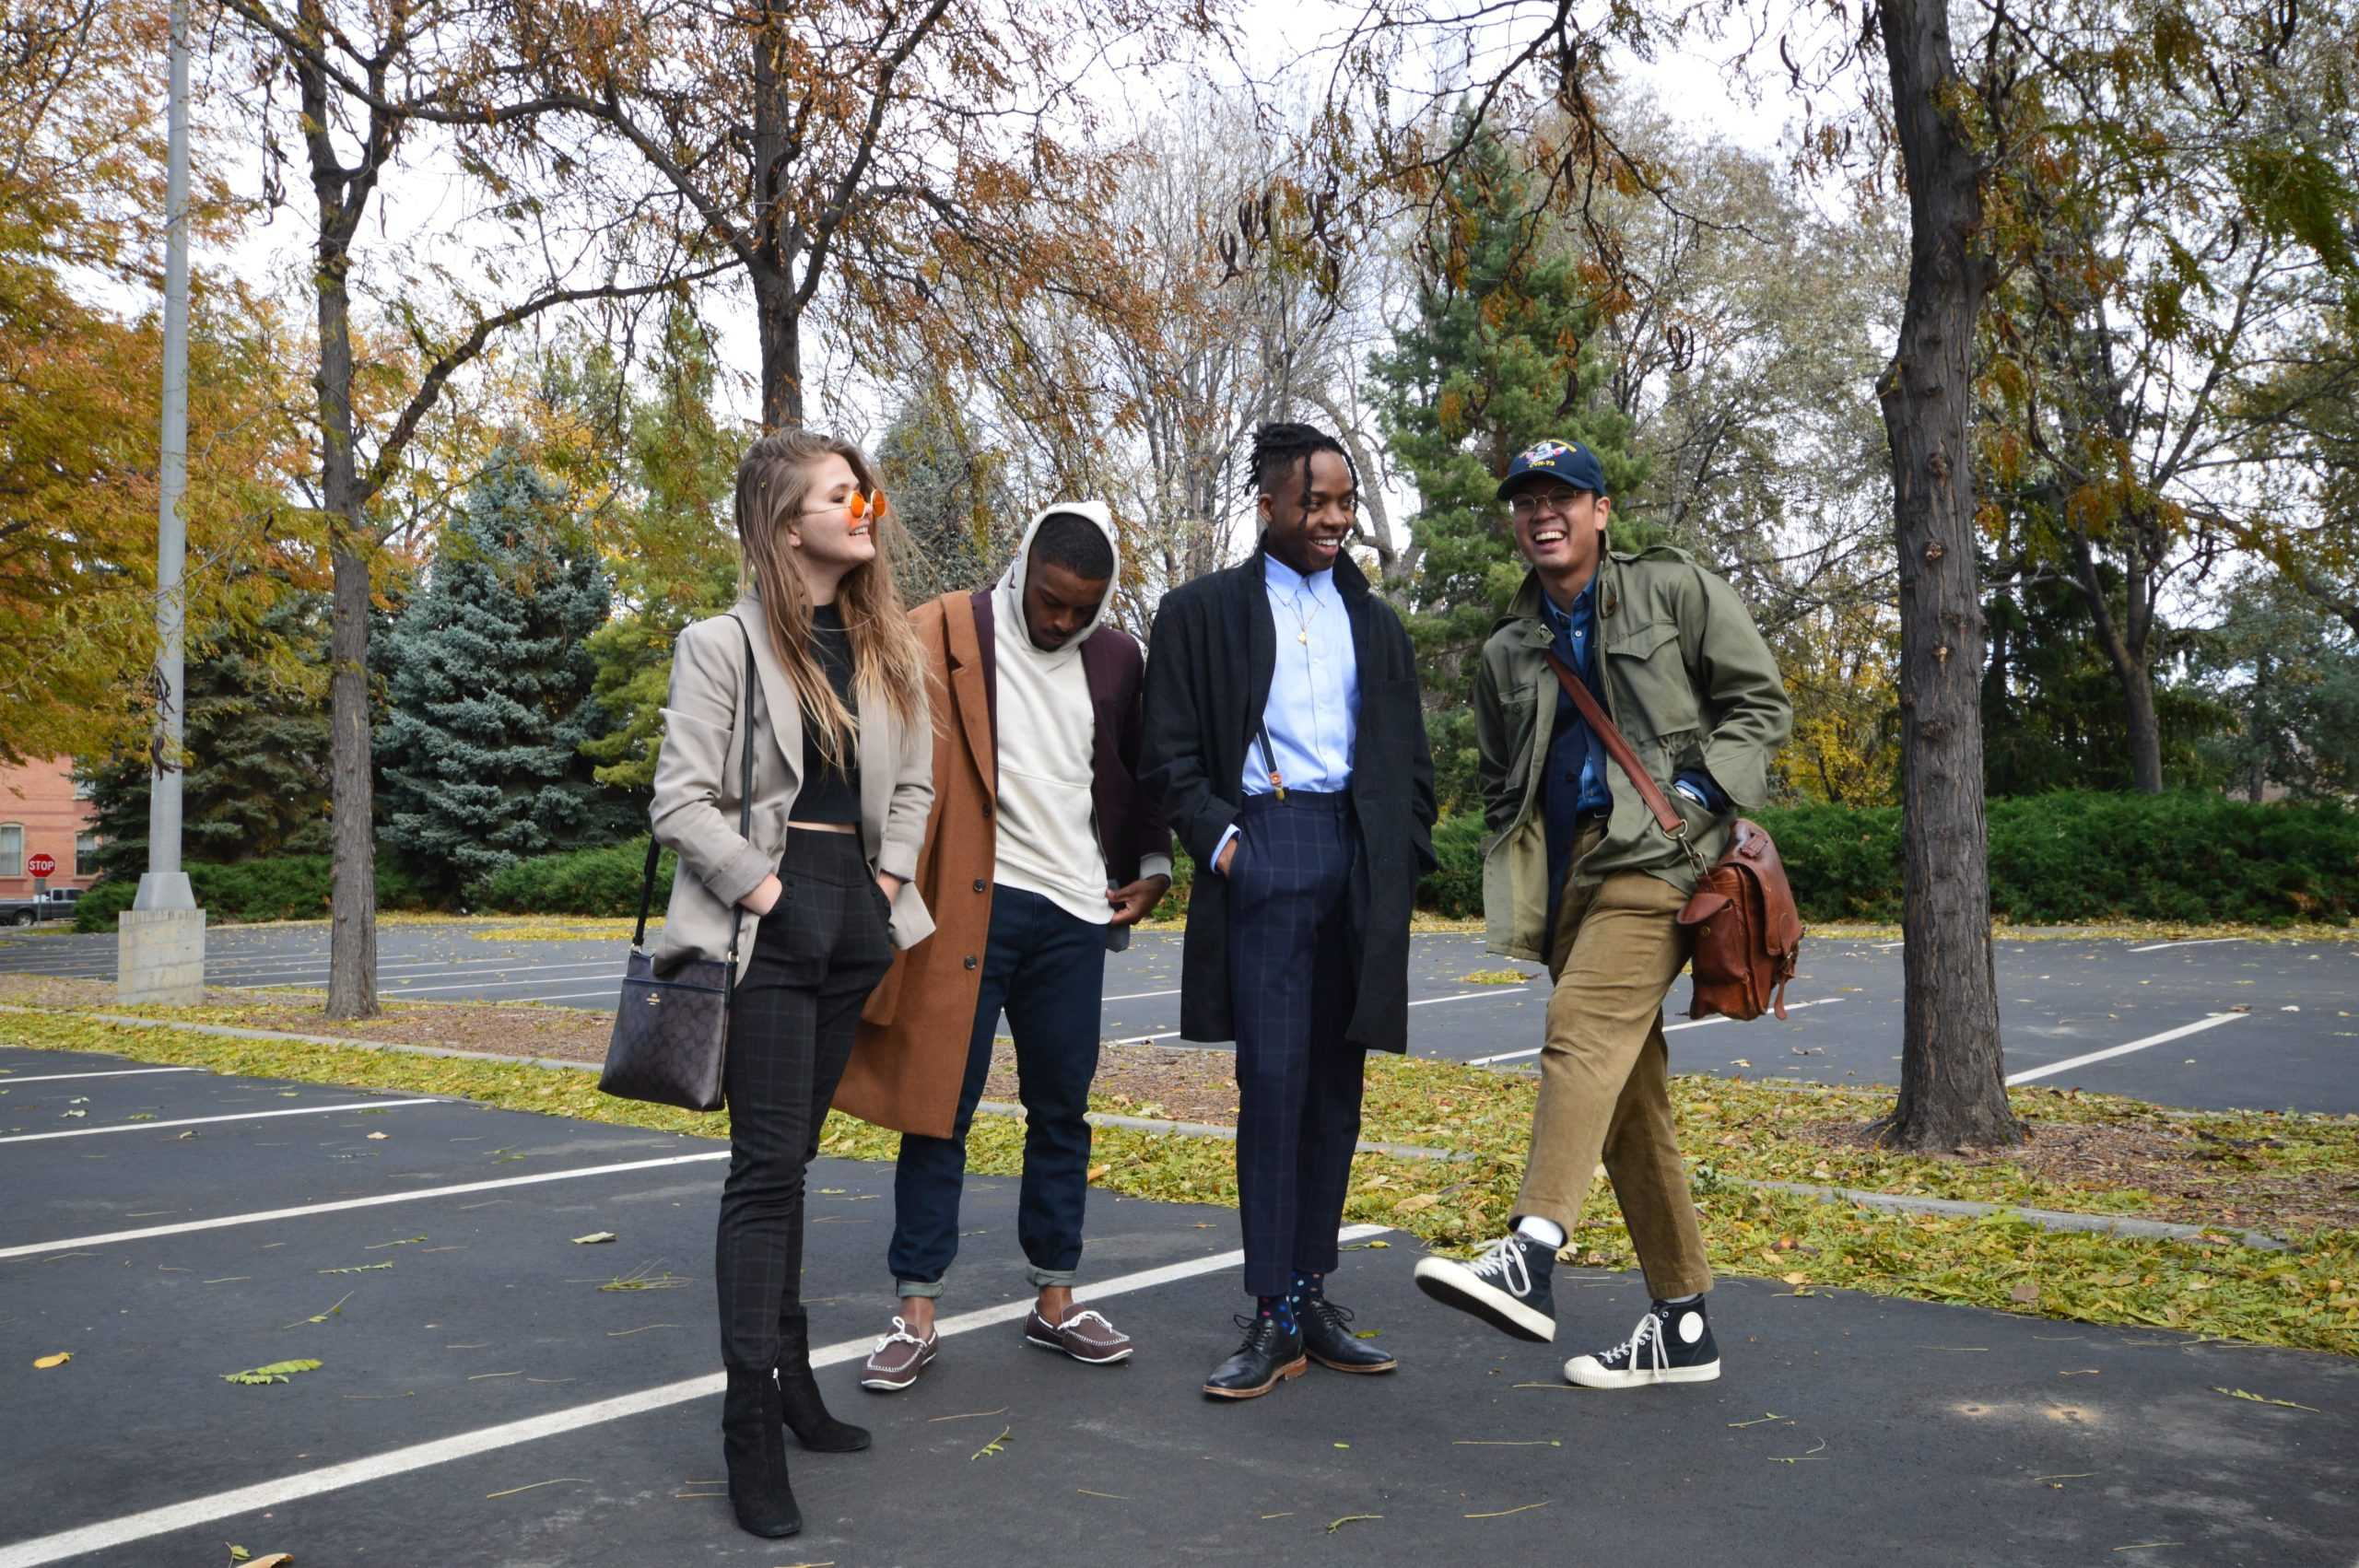 Four people, one white woman, two black men, and one Filipino man, stand in a parking lot dressed in fashionable Ivy style